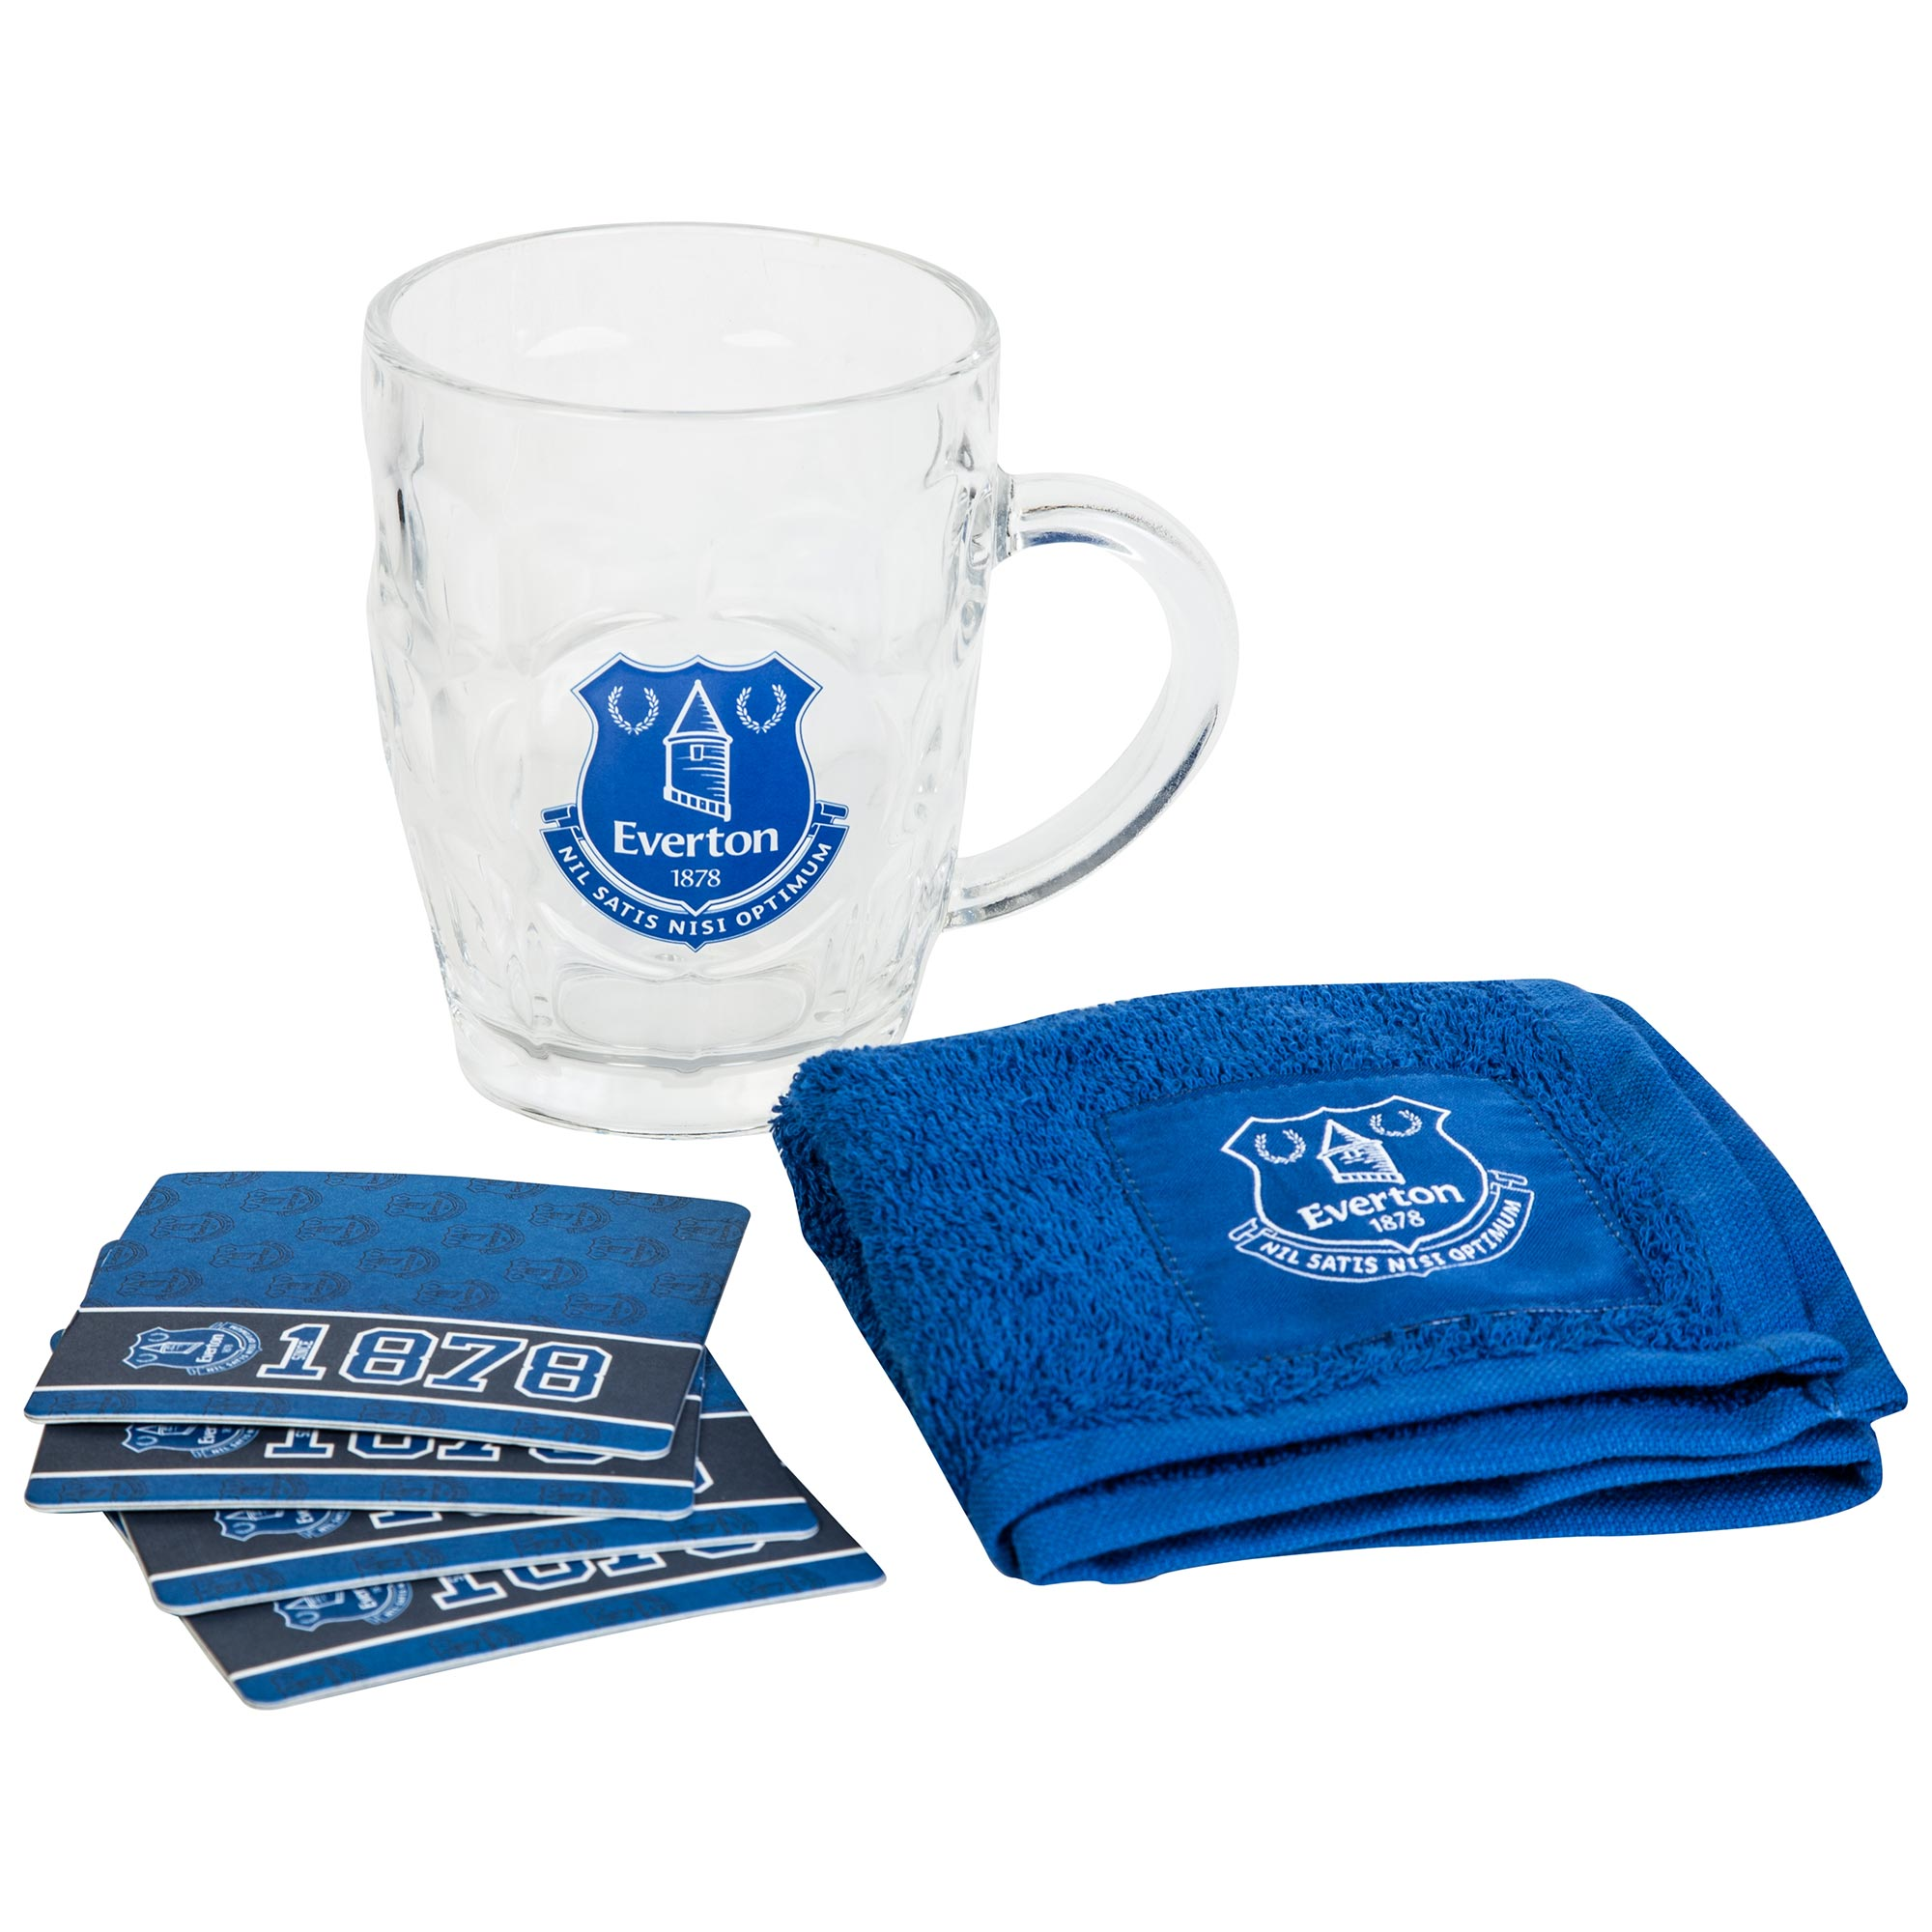 Everton Dimple Mini Bar Set